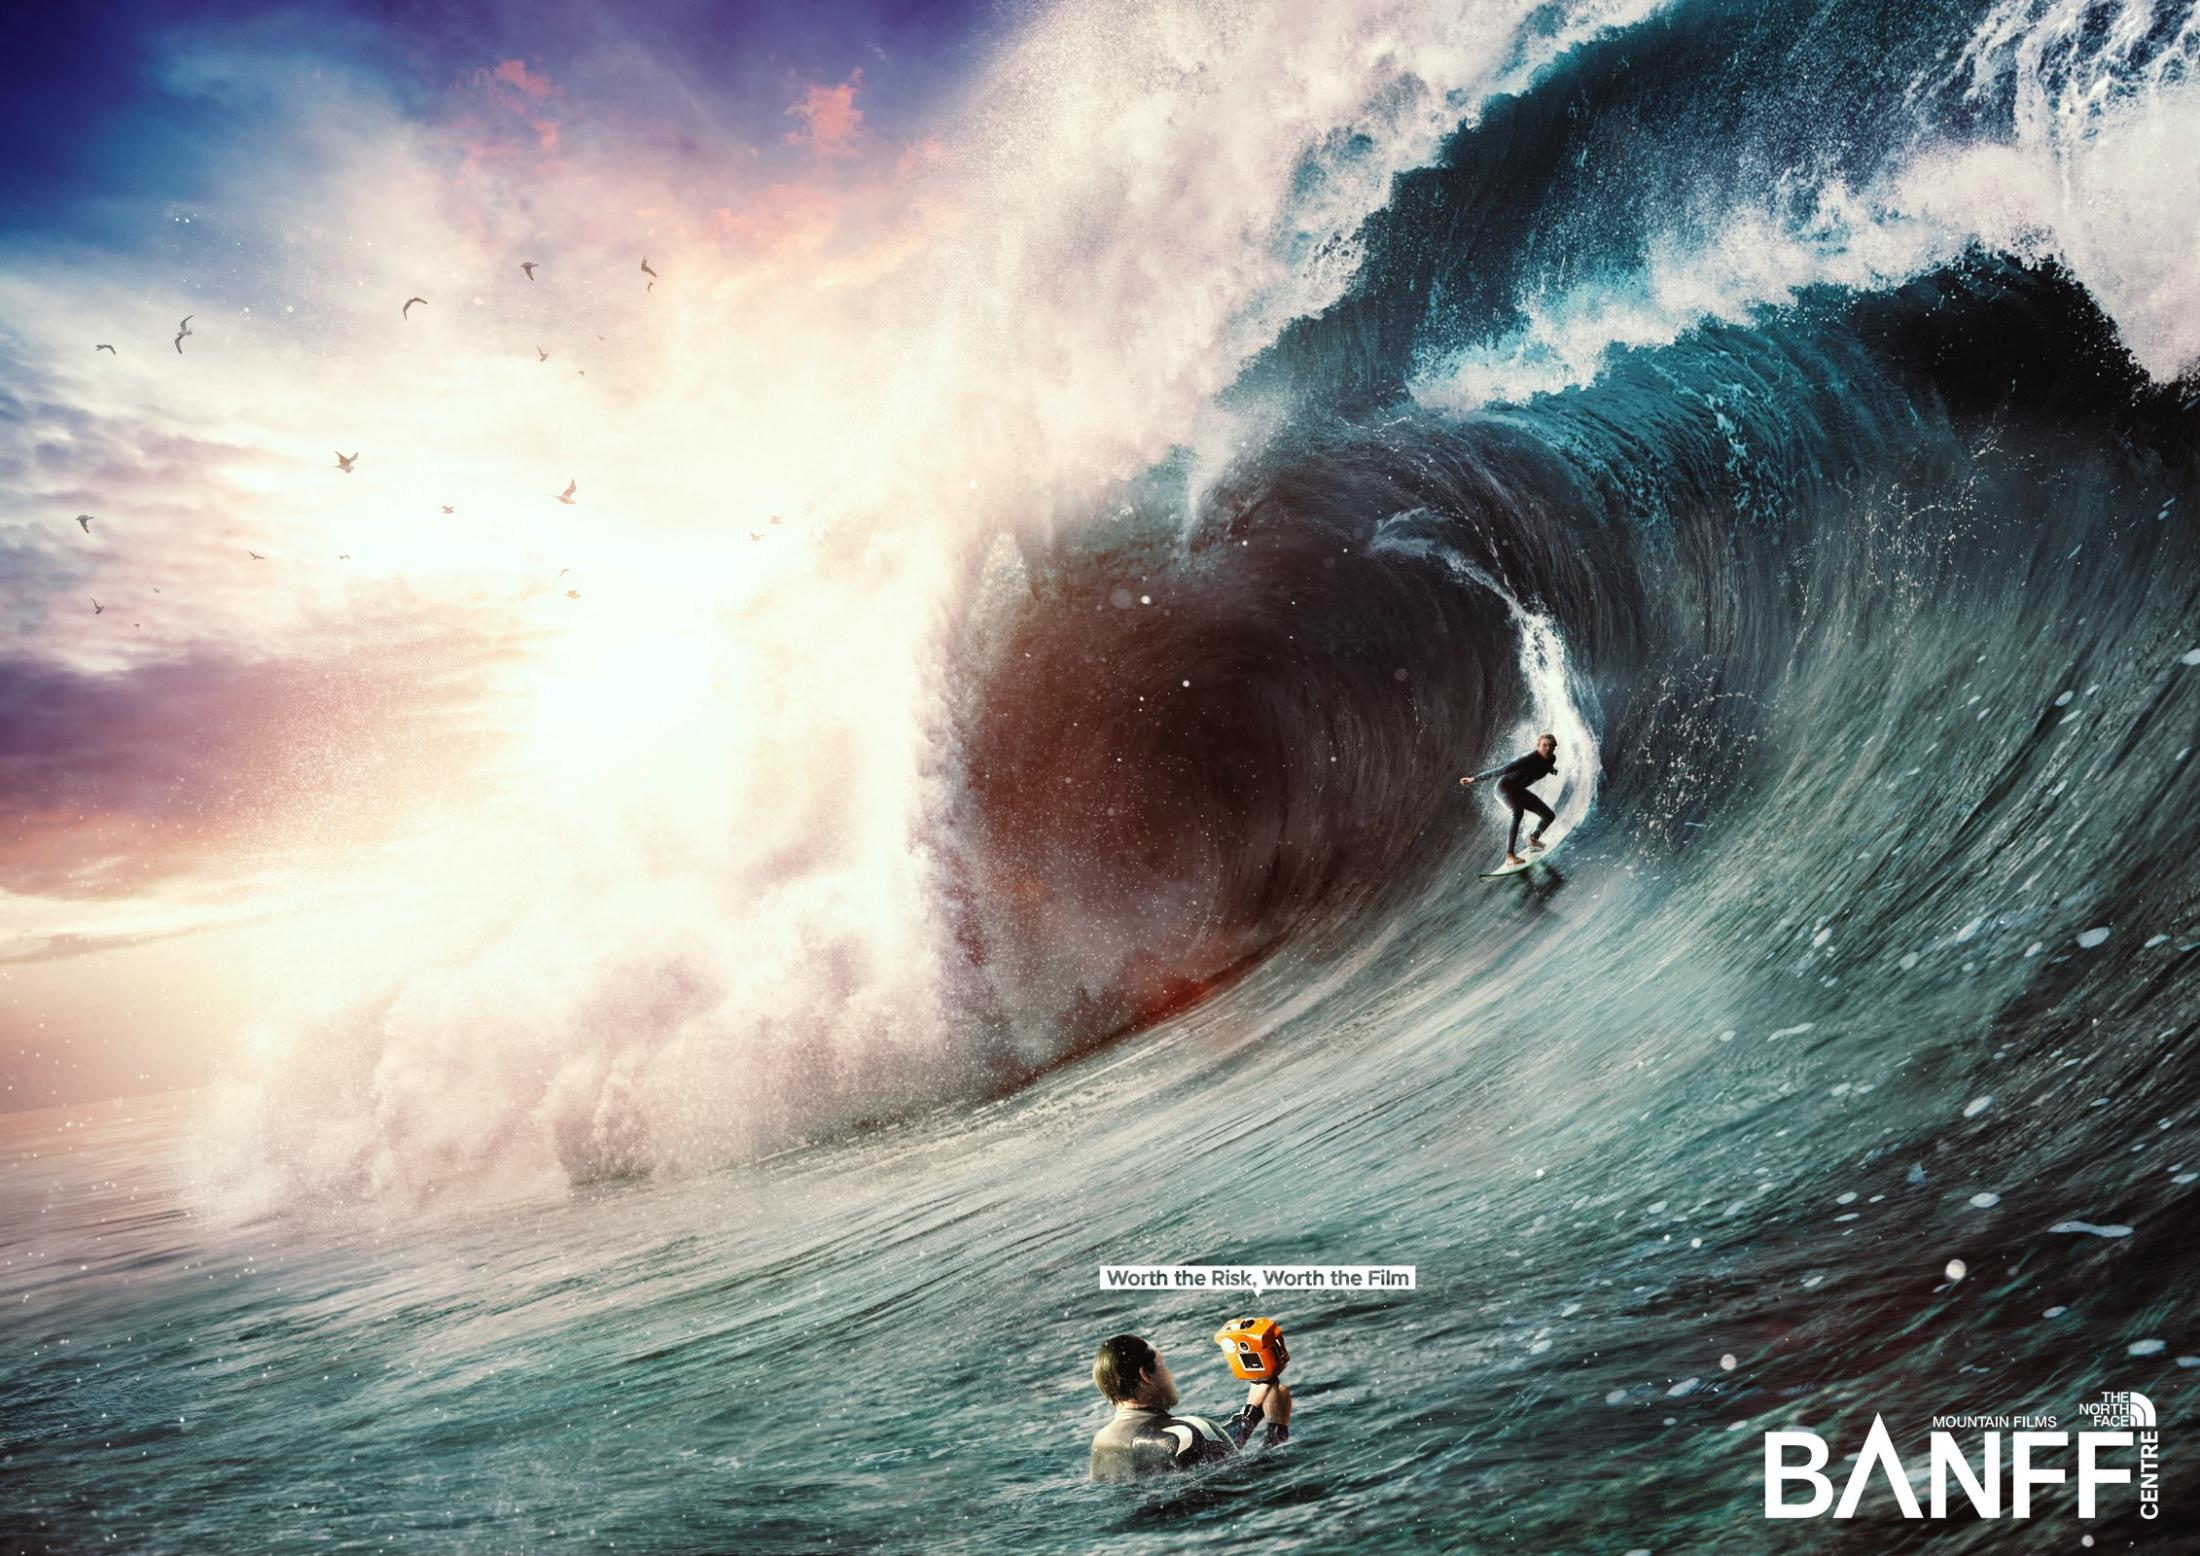 The North Face Print Ad - North Face Mountain Film Festival - Wave